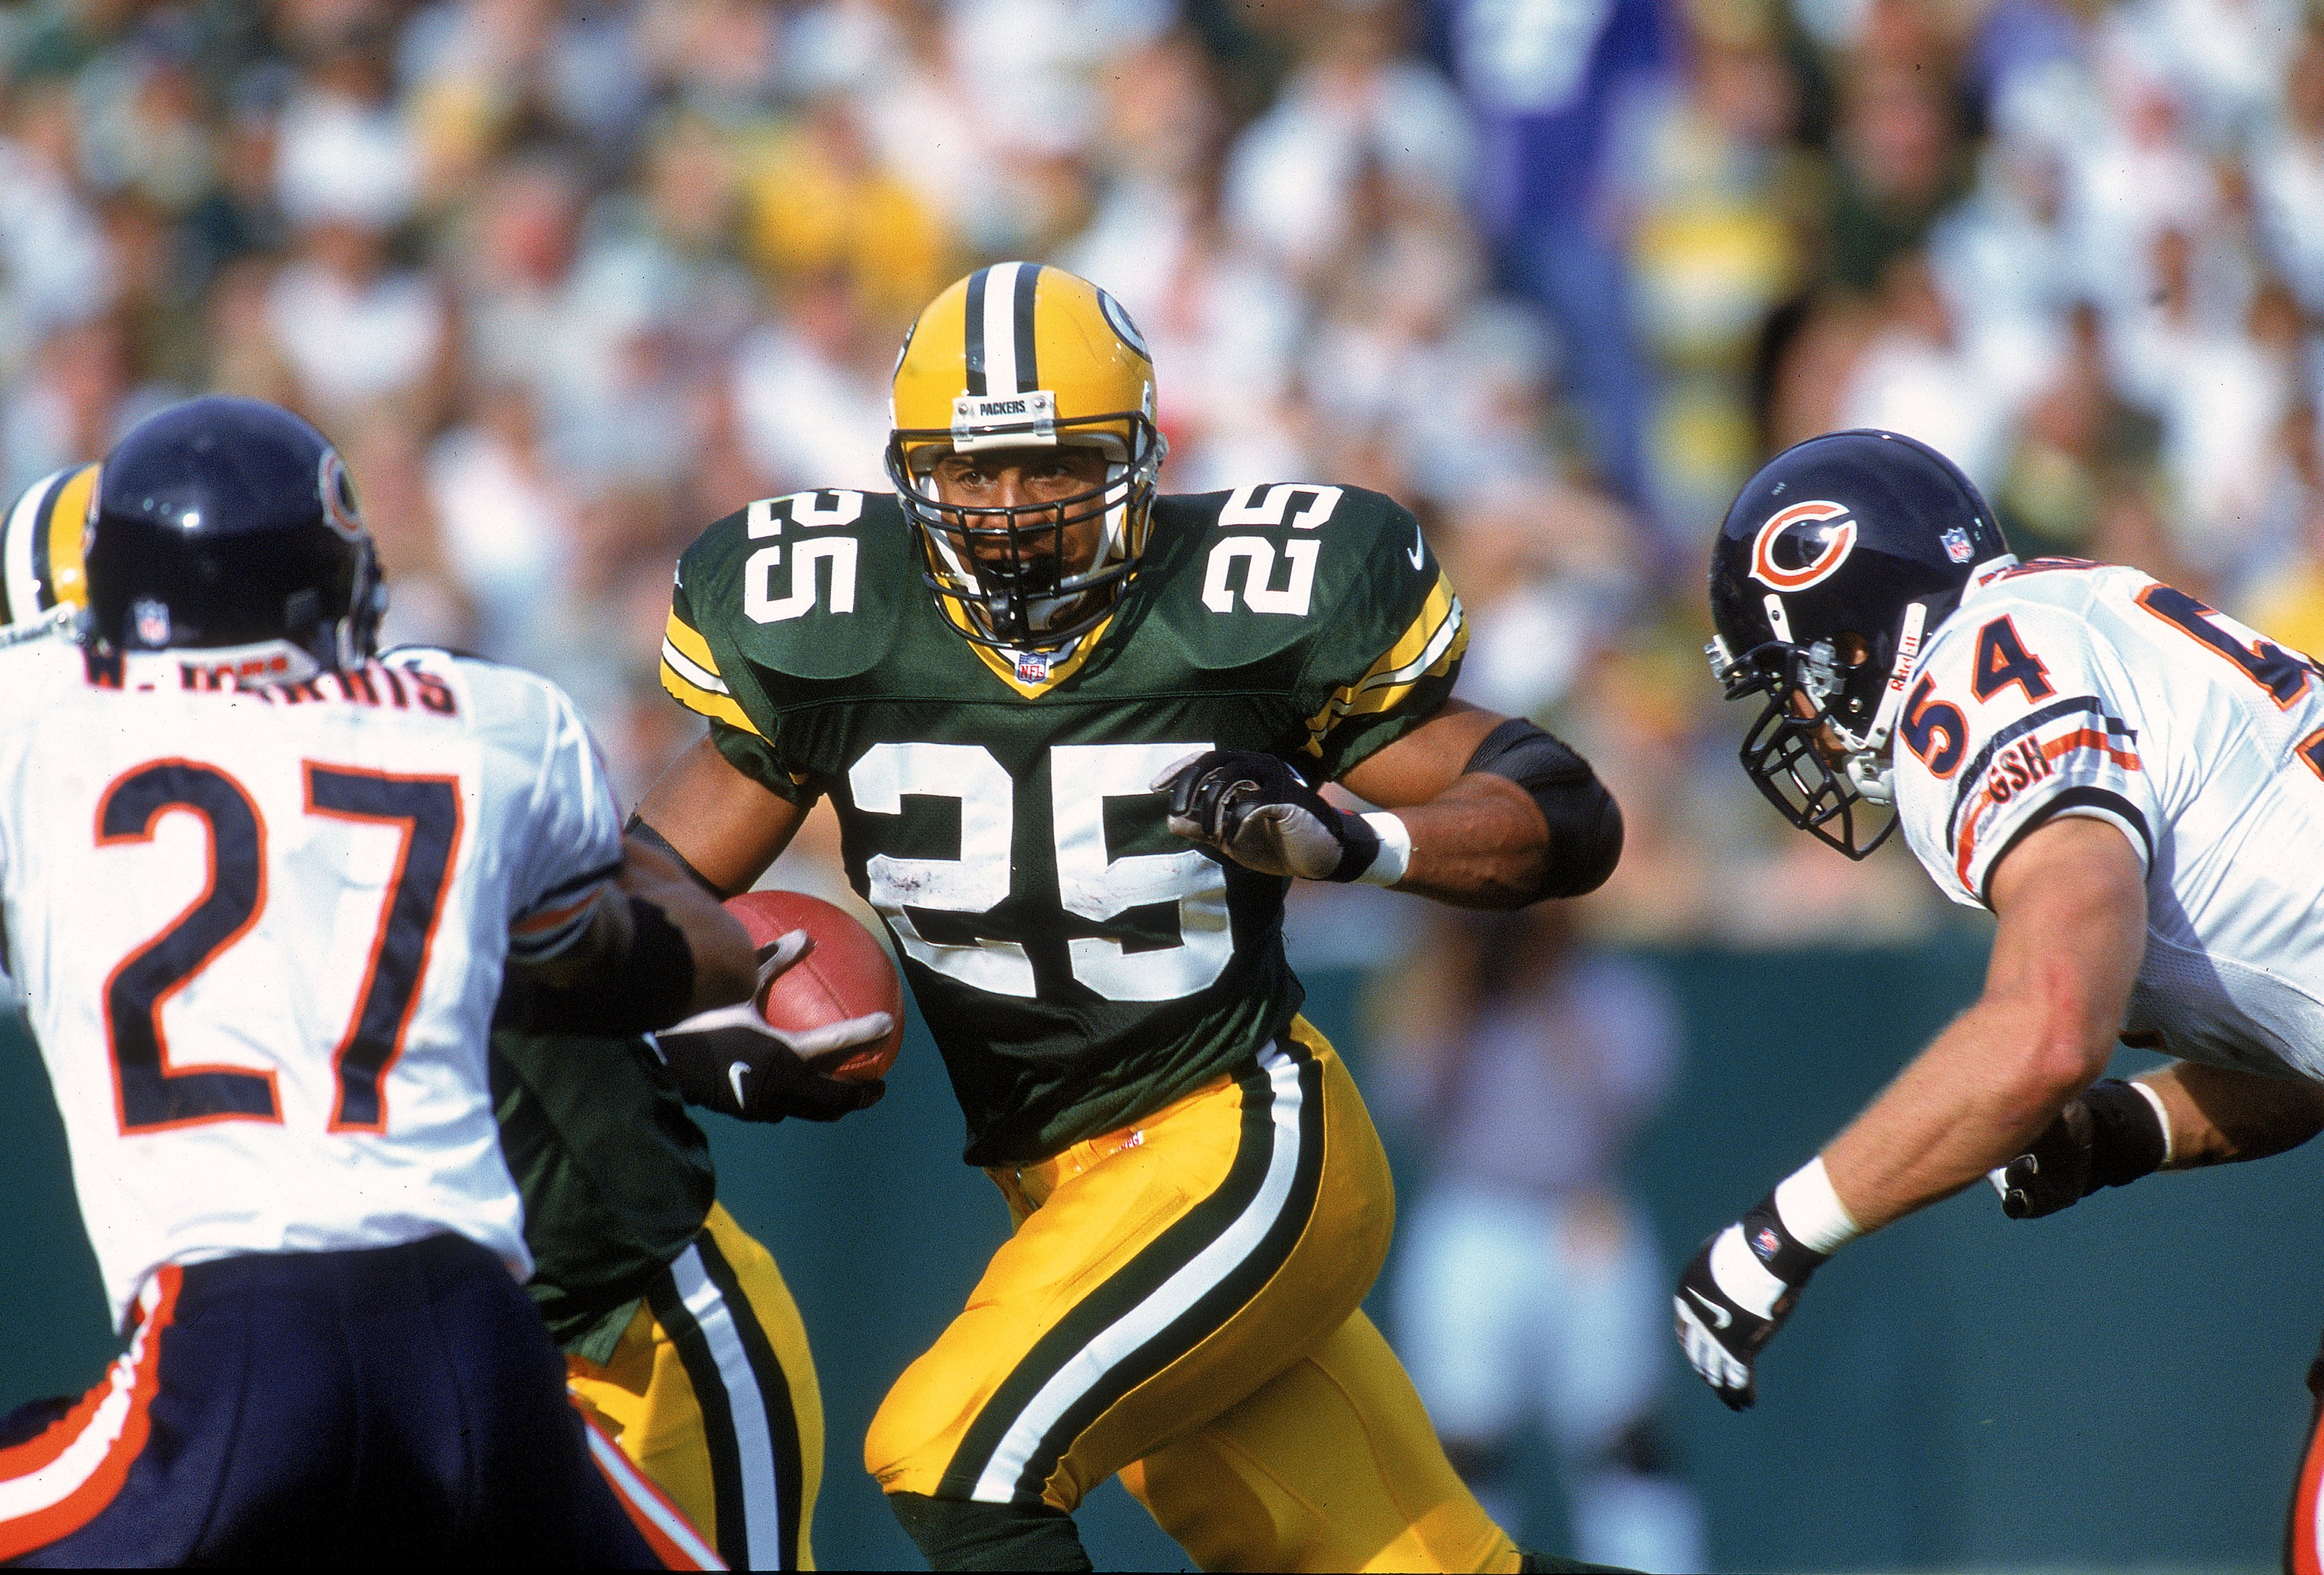 1 Oct 2000:  Dorsey Levens #25 of the Green Bay Packers carries the ball as he tries to avoid the tackle by Walt Harris #27 and Brian Urlacher #54 of the Chicago Bears at Lambeau Field in Green Bay, Wisconsin. The Bears defeated the Packers 27-24. Mandato